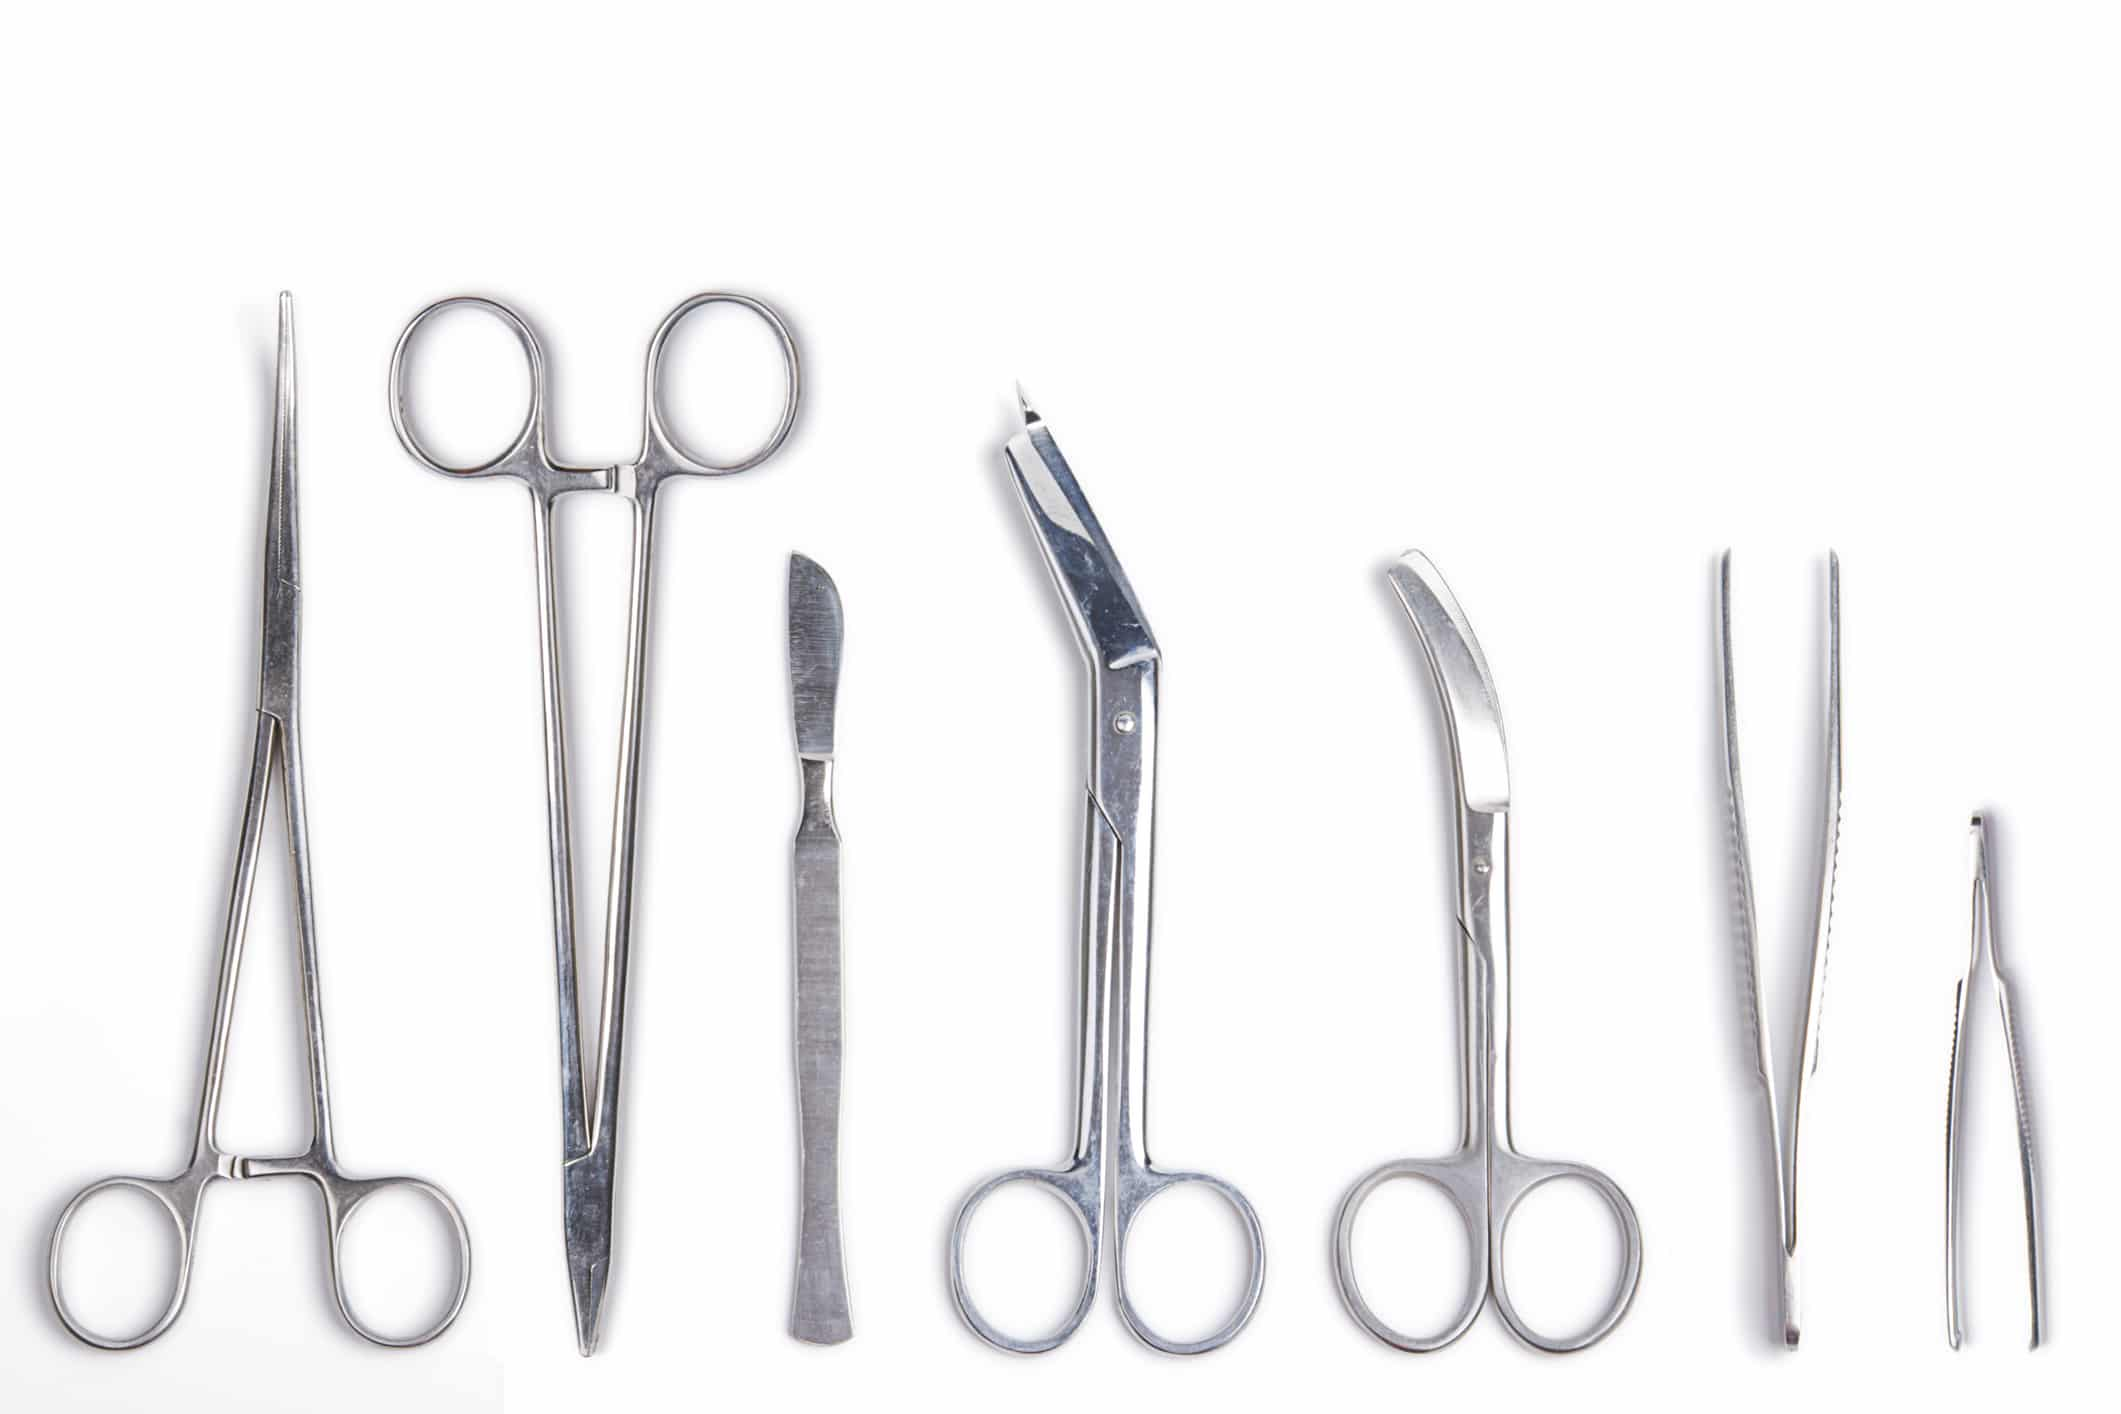 Surgeon tools - scalpel, forceps, clamps, scissors - isolated